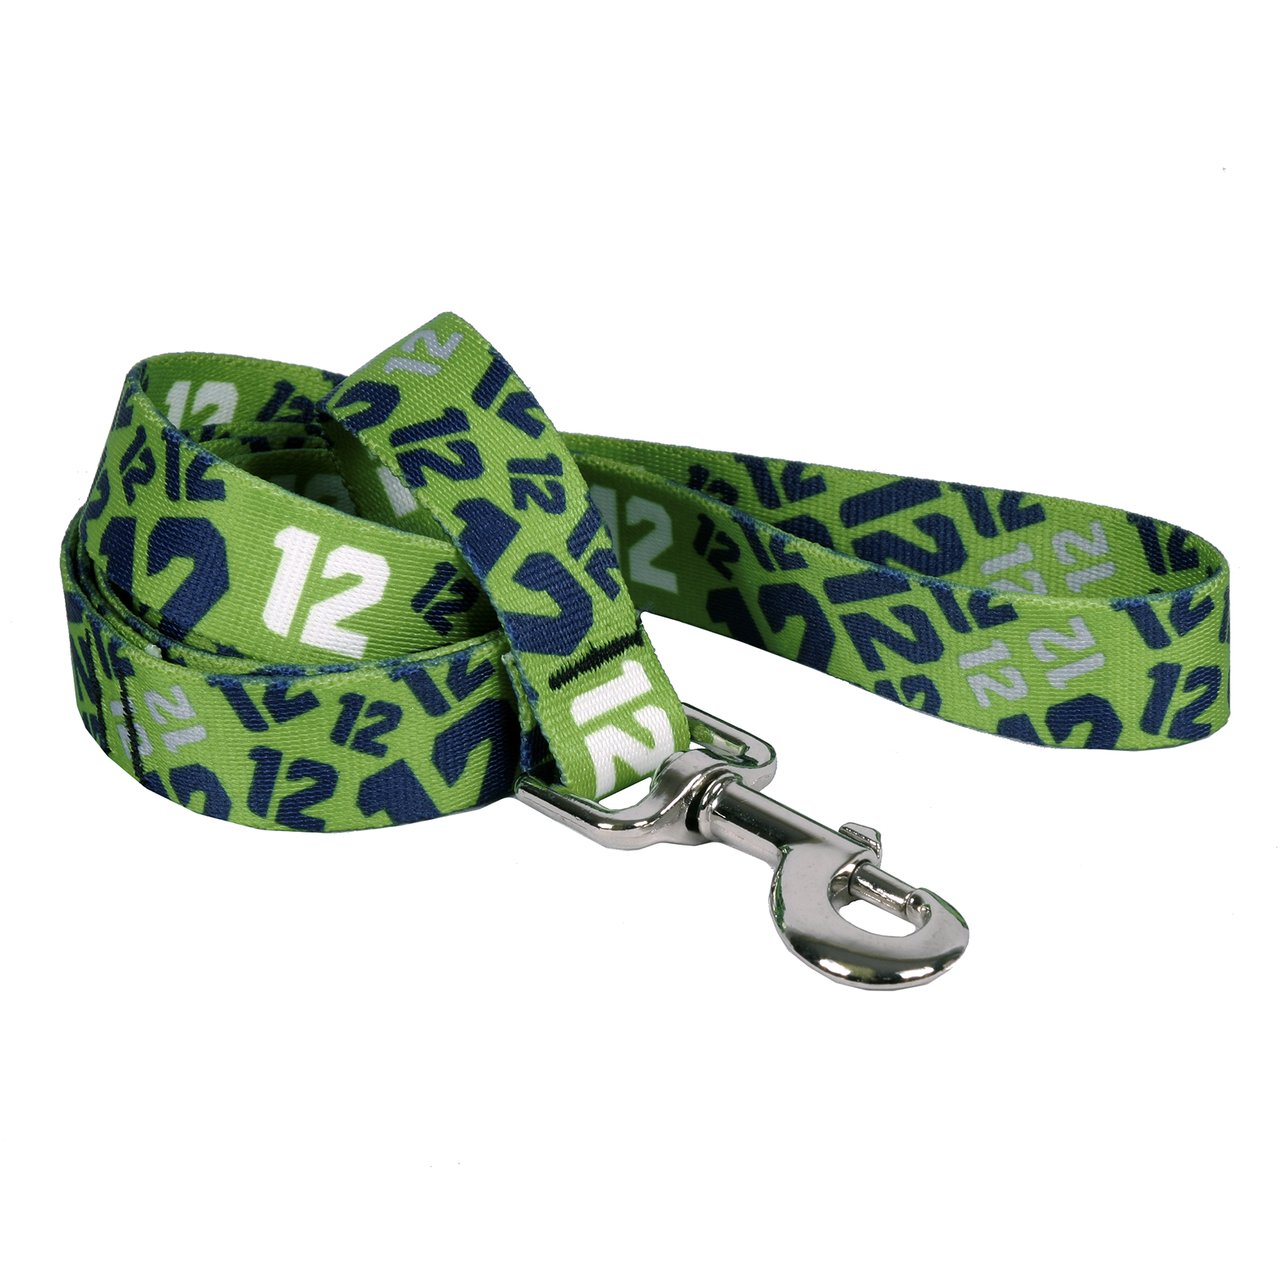 Yellow Dog Design, Multi 12 on Green Dog Leash, Extra Small 3/8'' x 60'' (5 ft.)